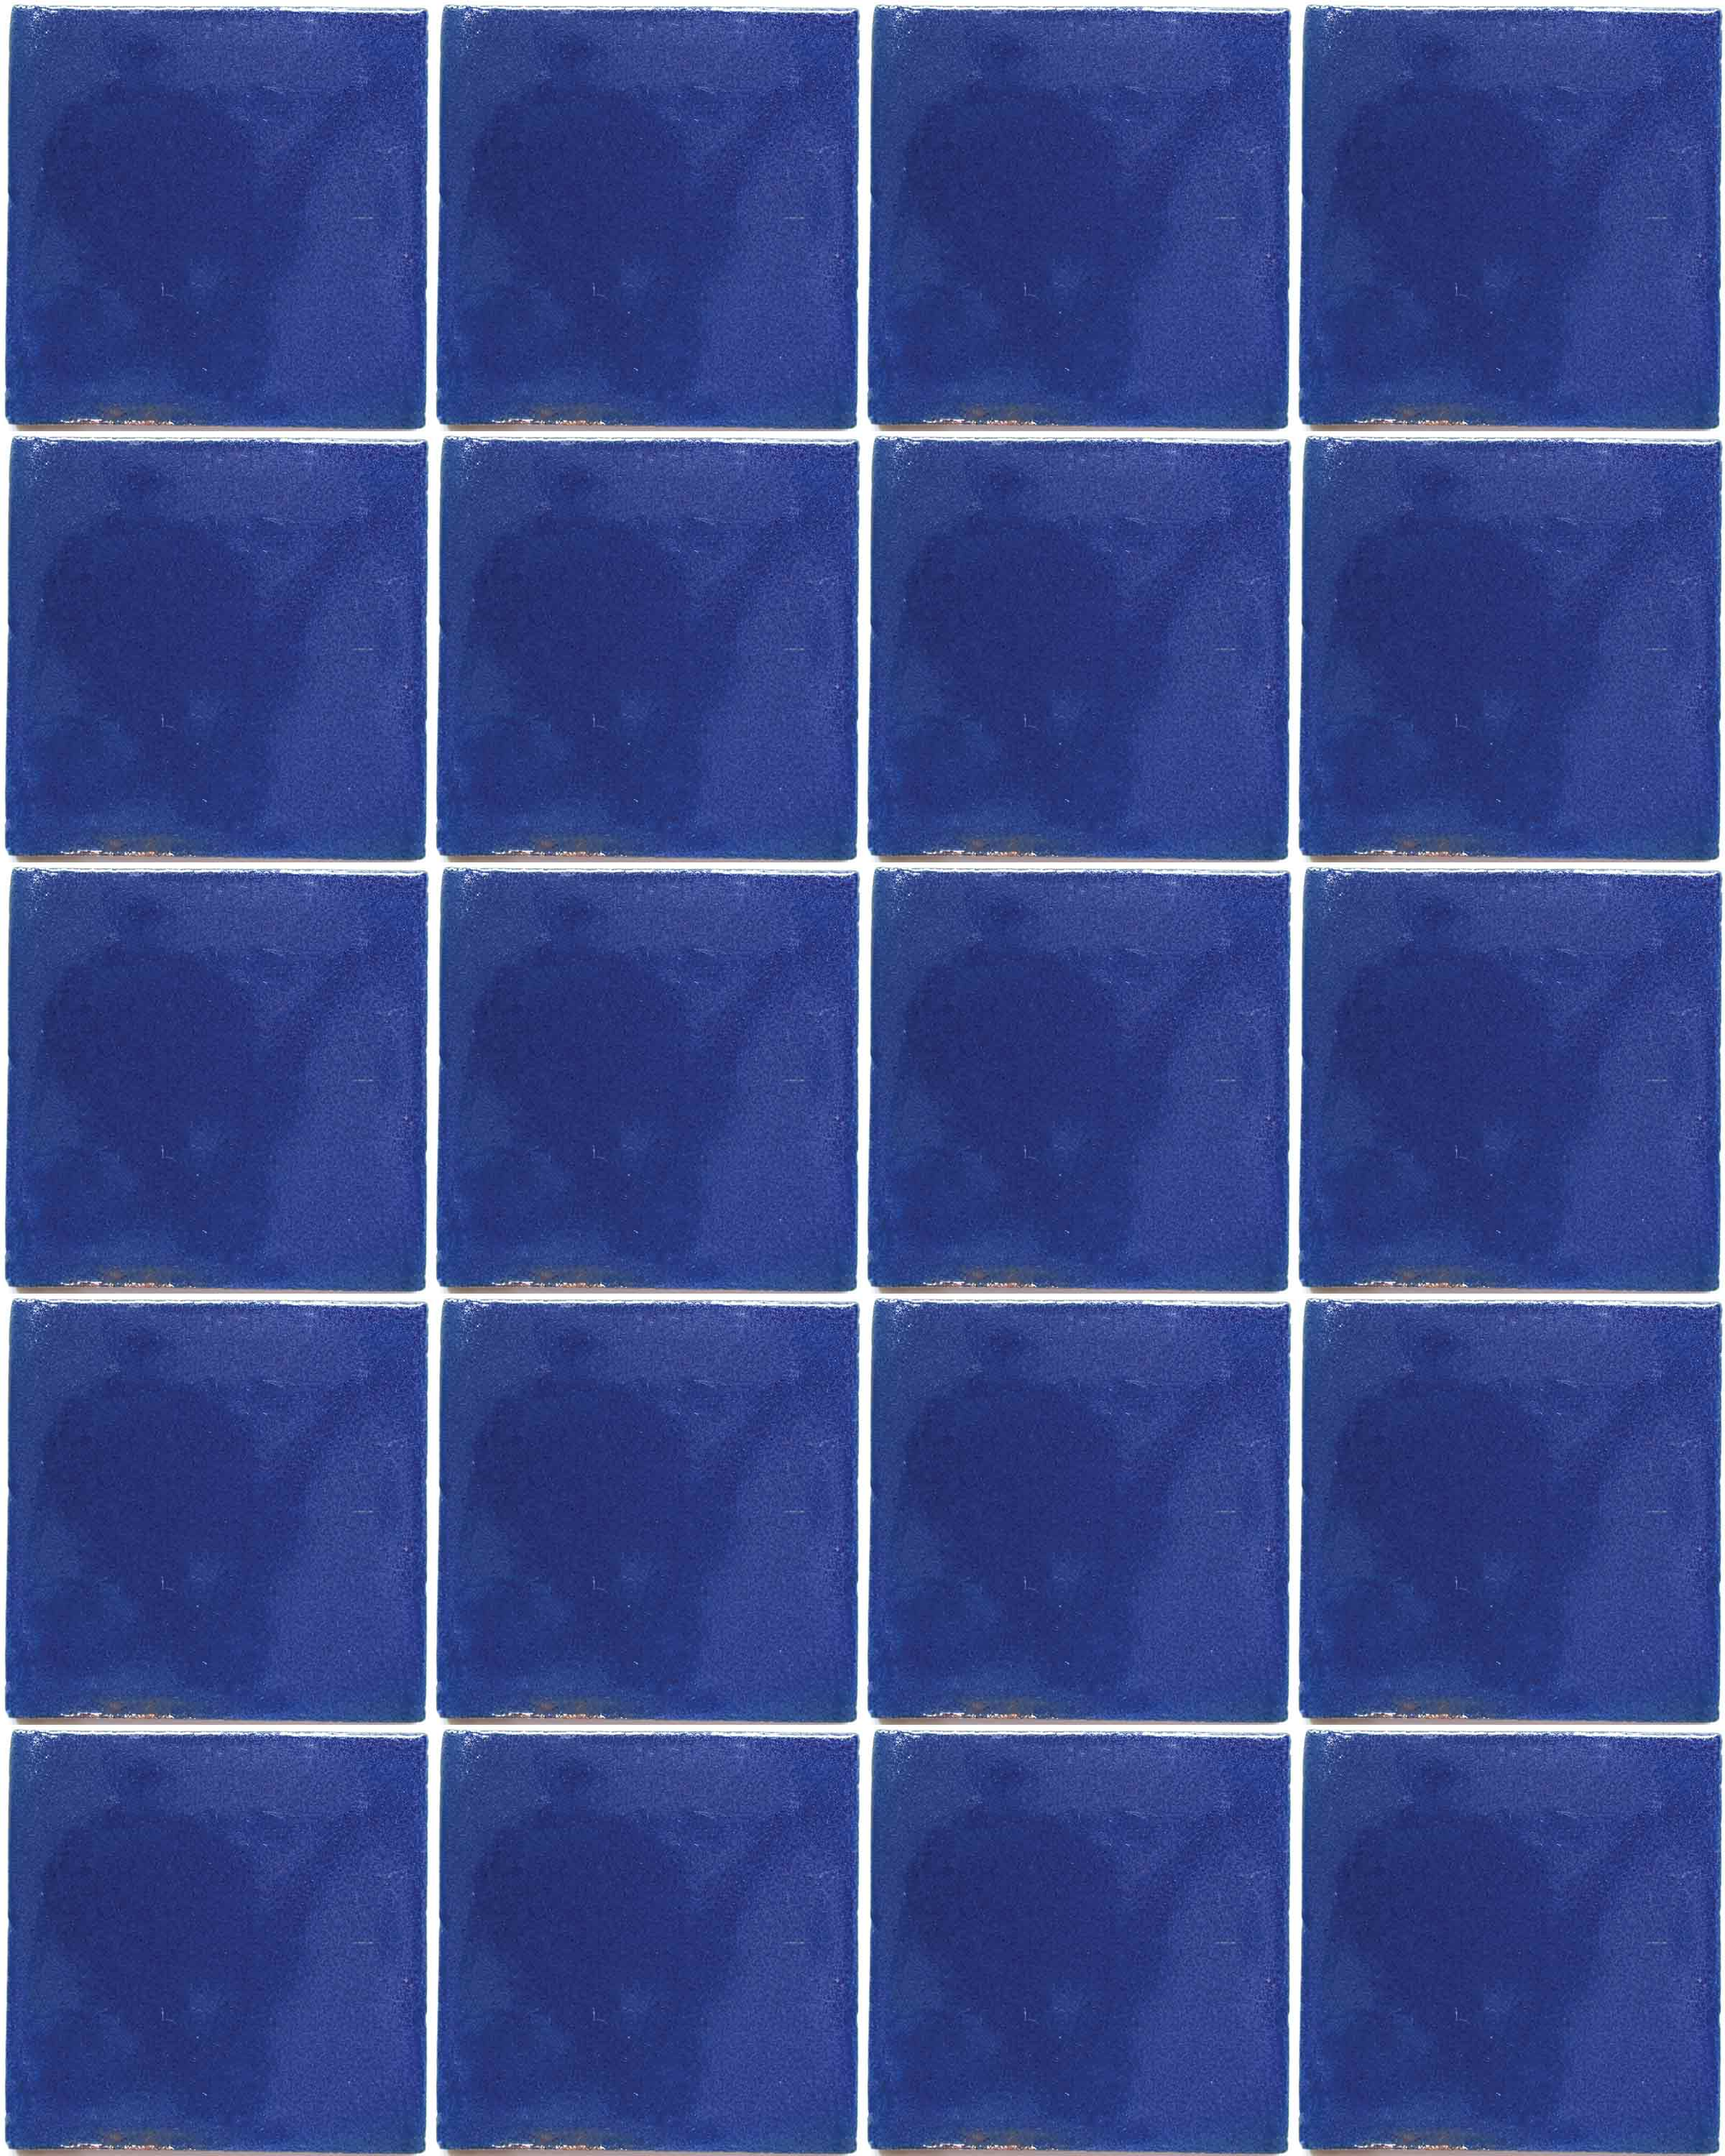 cobalt blue hand made tiles